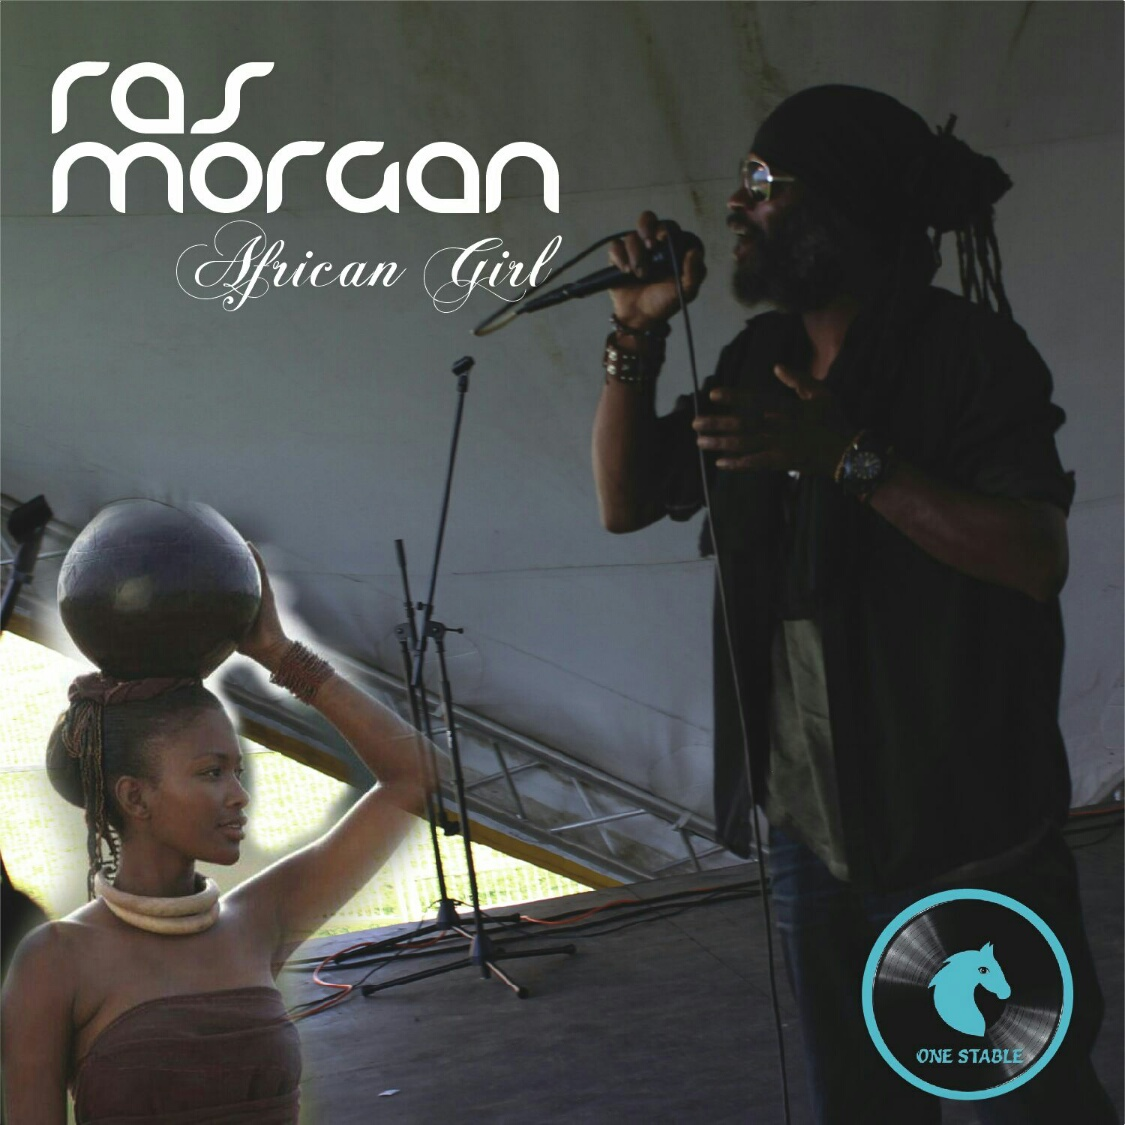 African Girls - Ras Morgan